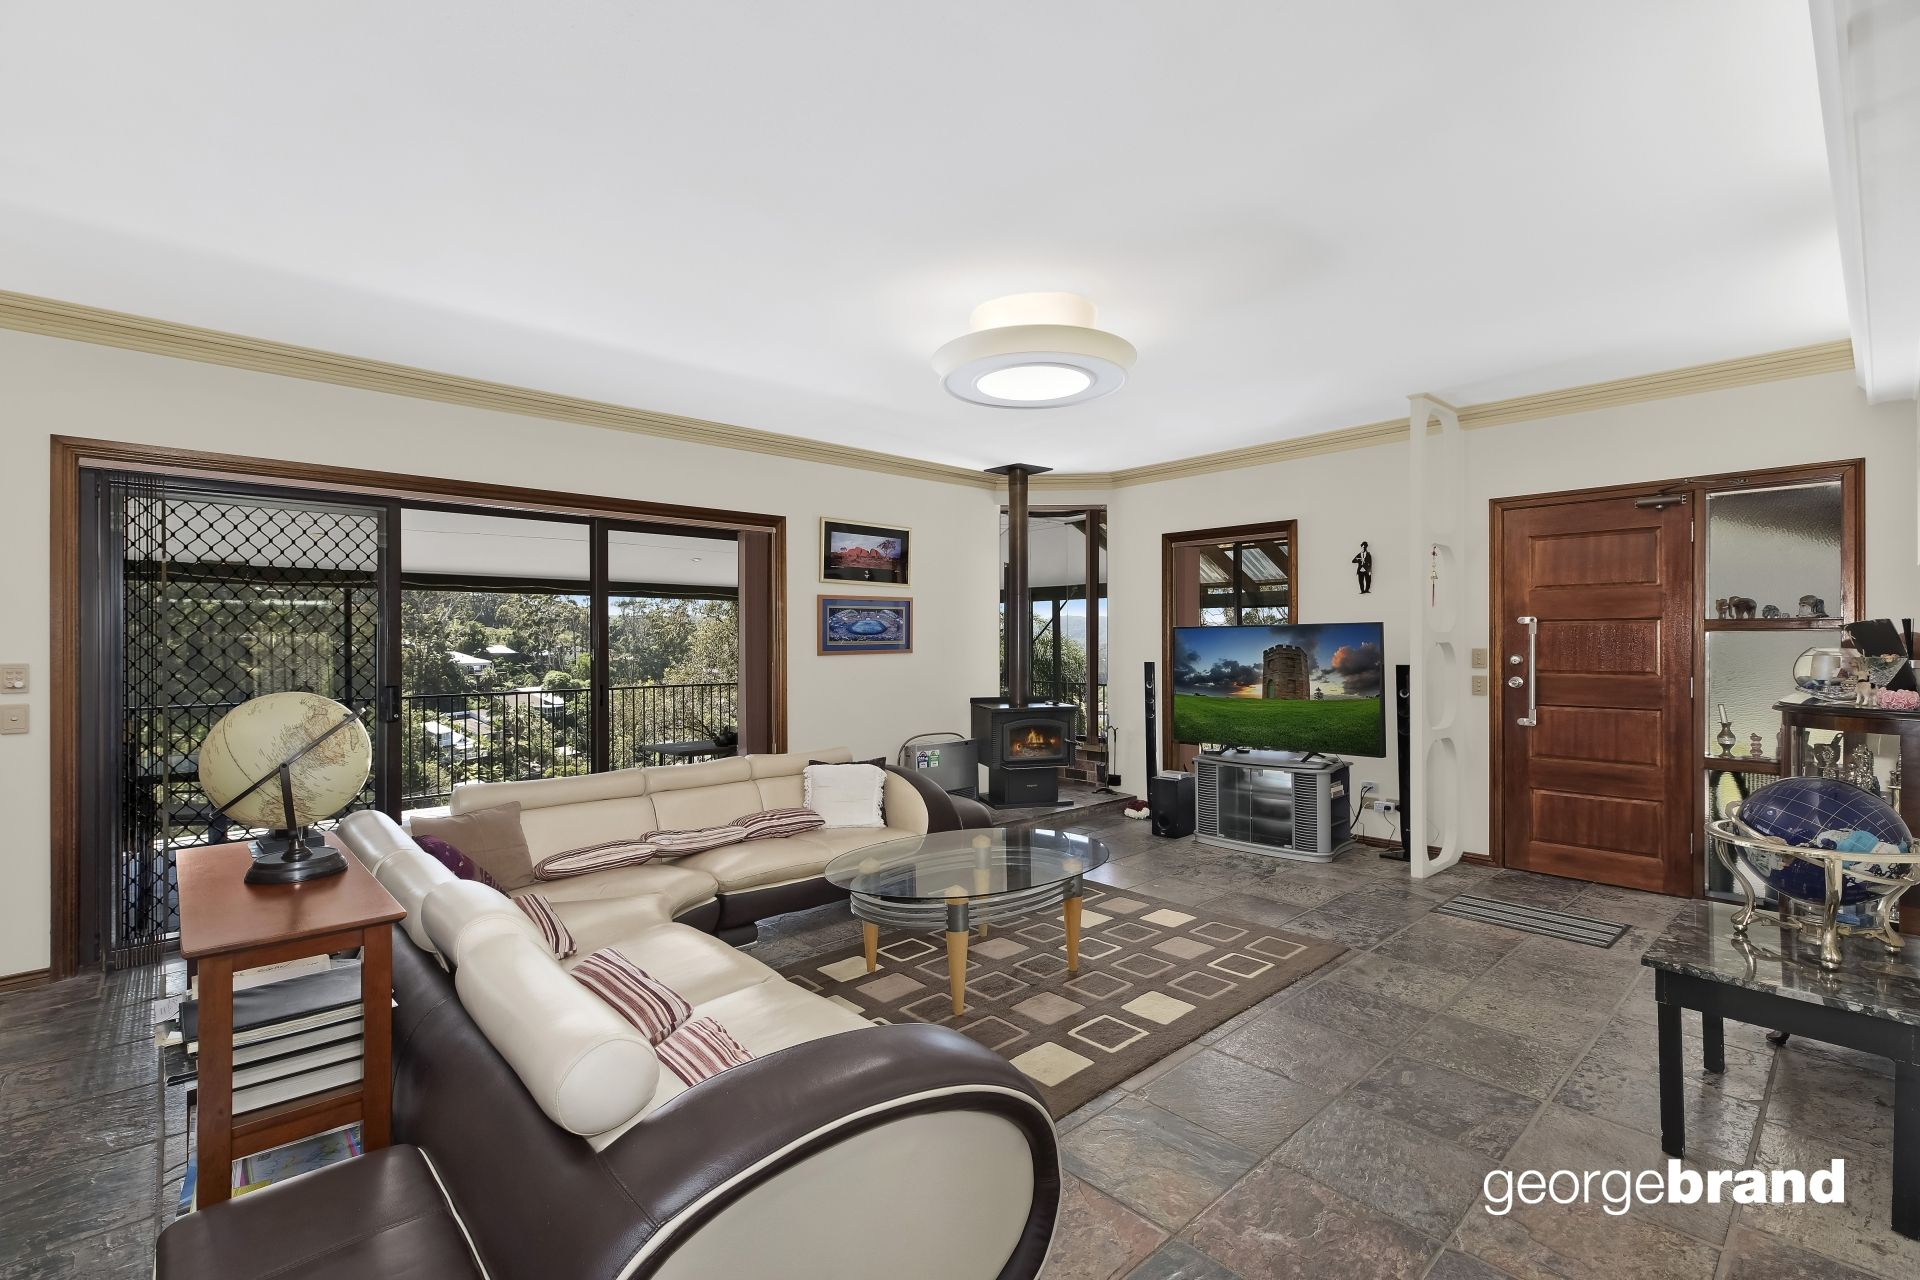 Terrigal Real Estate: 2.2 ACRES IN TERRIGAL CENTRAL